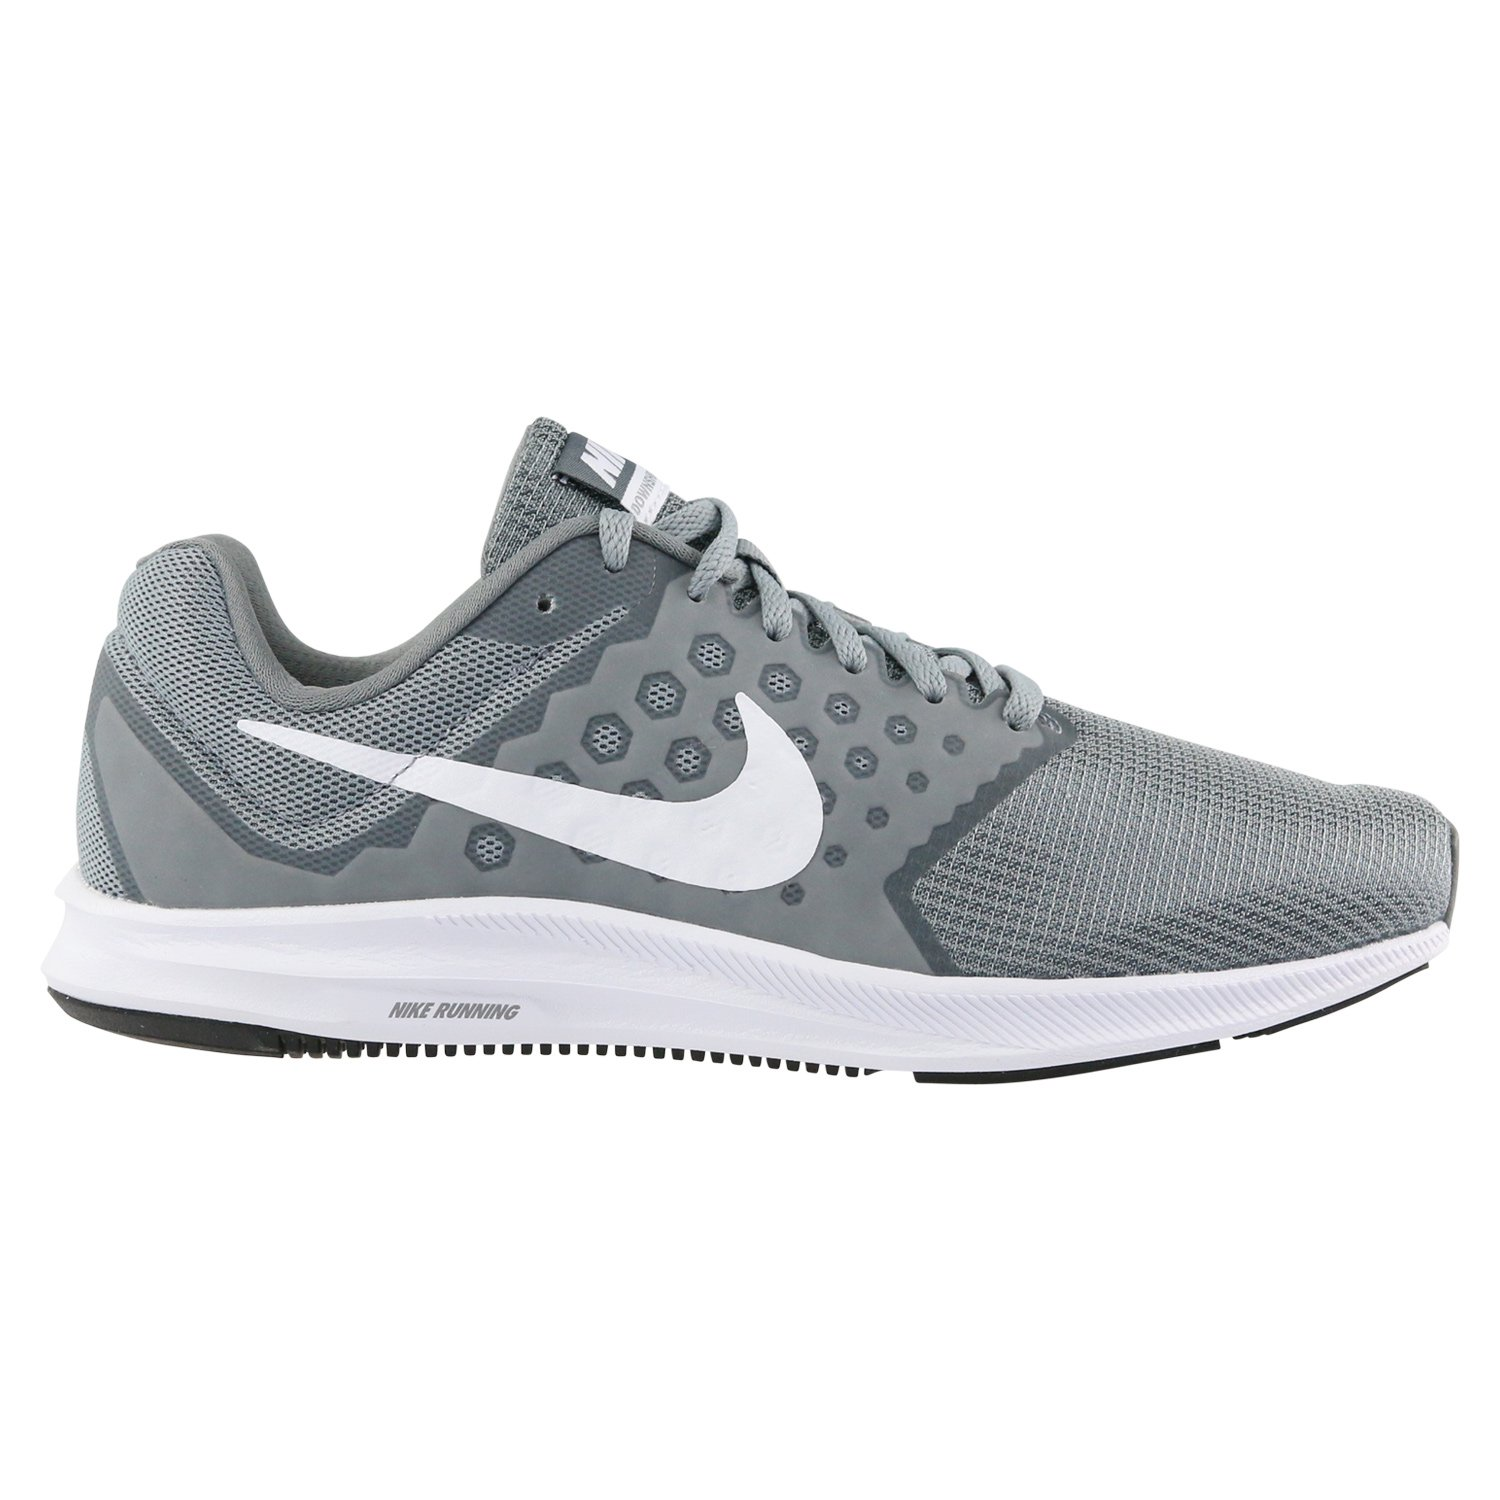 Women's Nike Downshifter 7 Running Shoe Stealth/White/Cool Grey/Black Size 8 M US